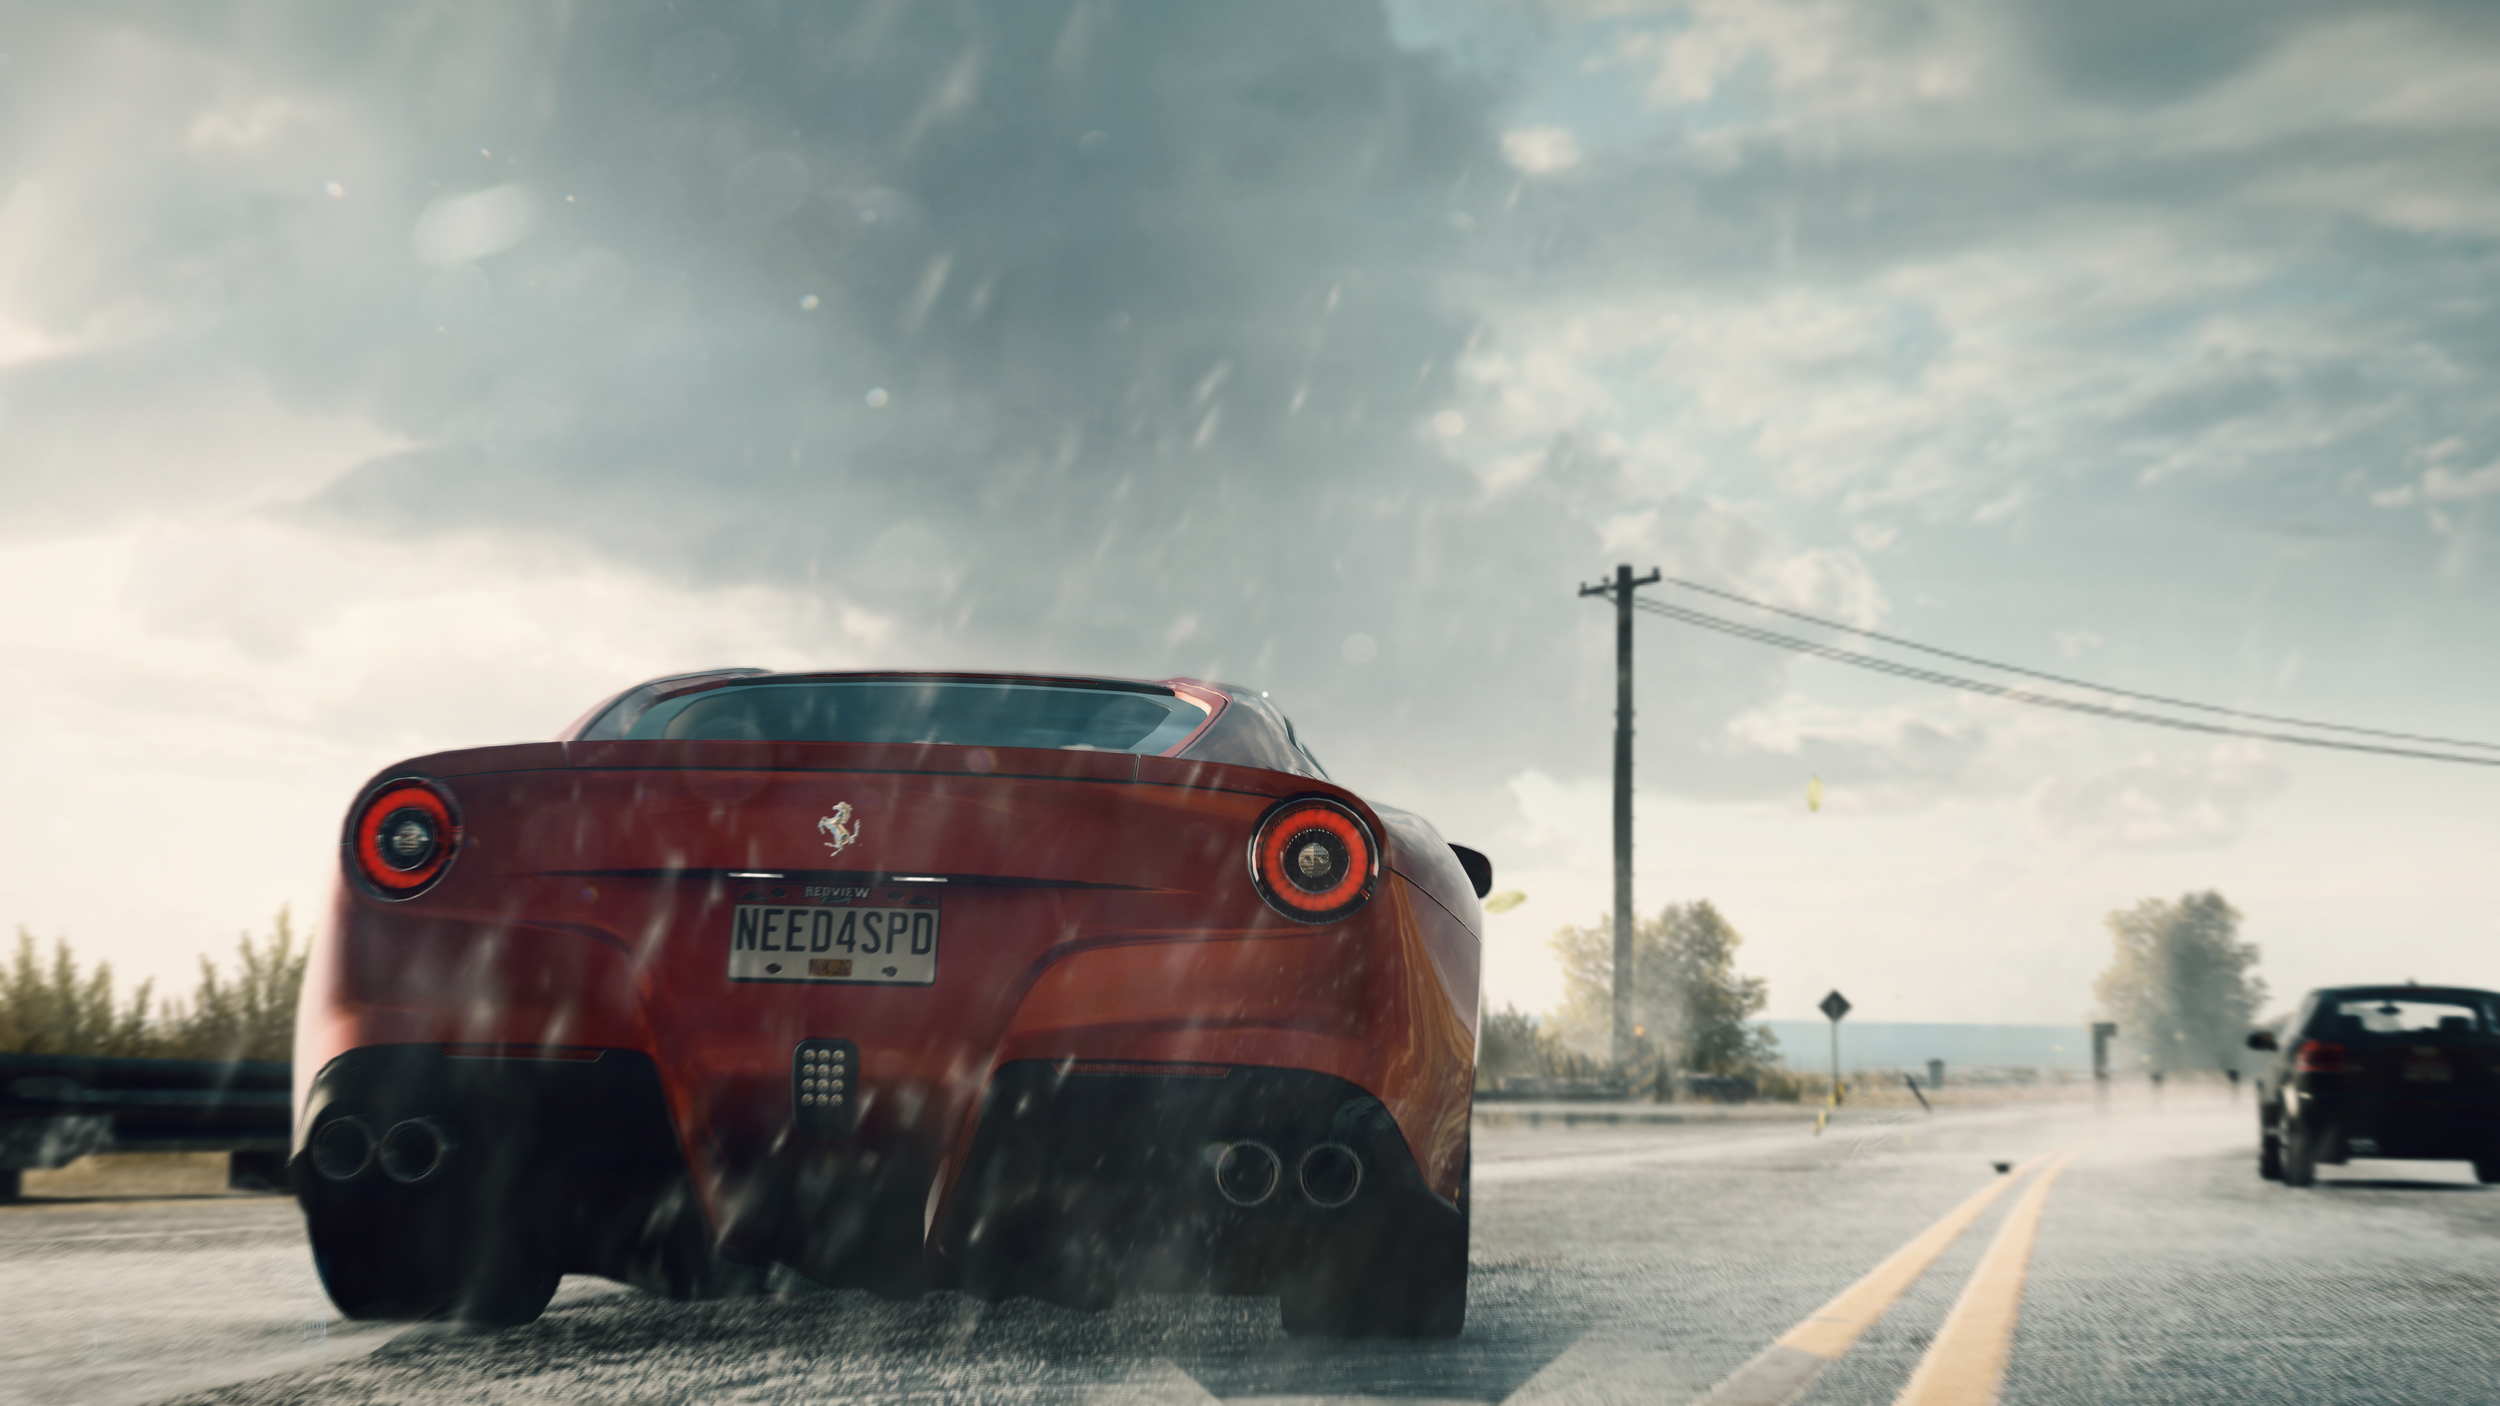 need_for_speed_rivals_ferrari_f12berlinetta_1.jpg